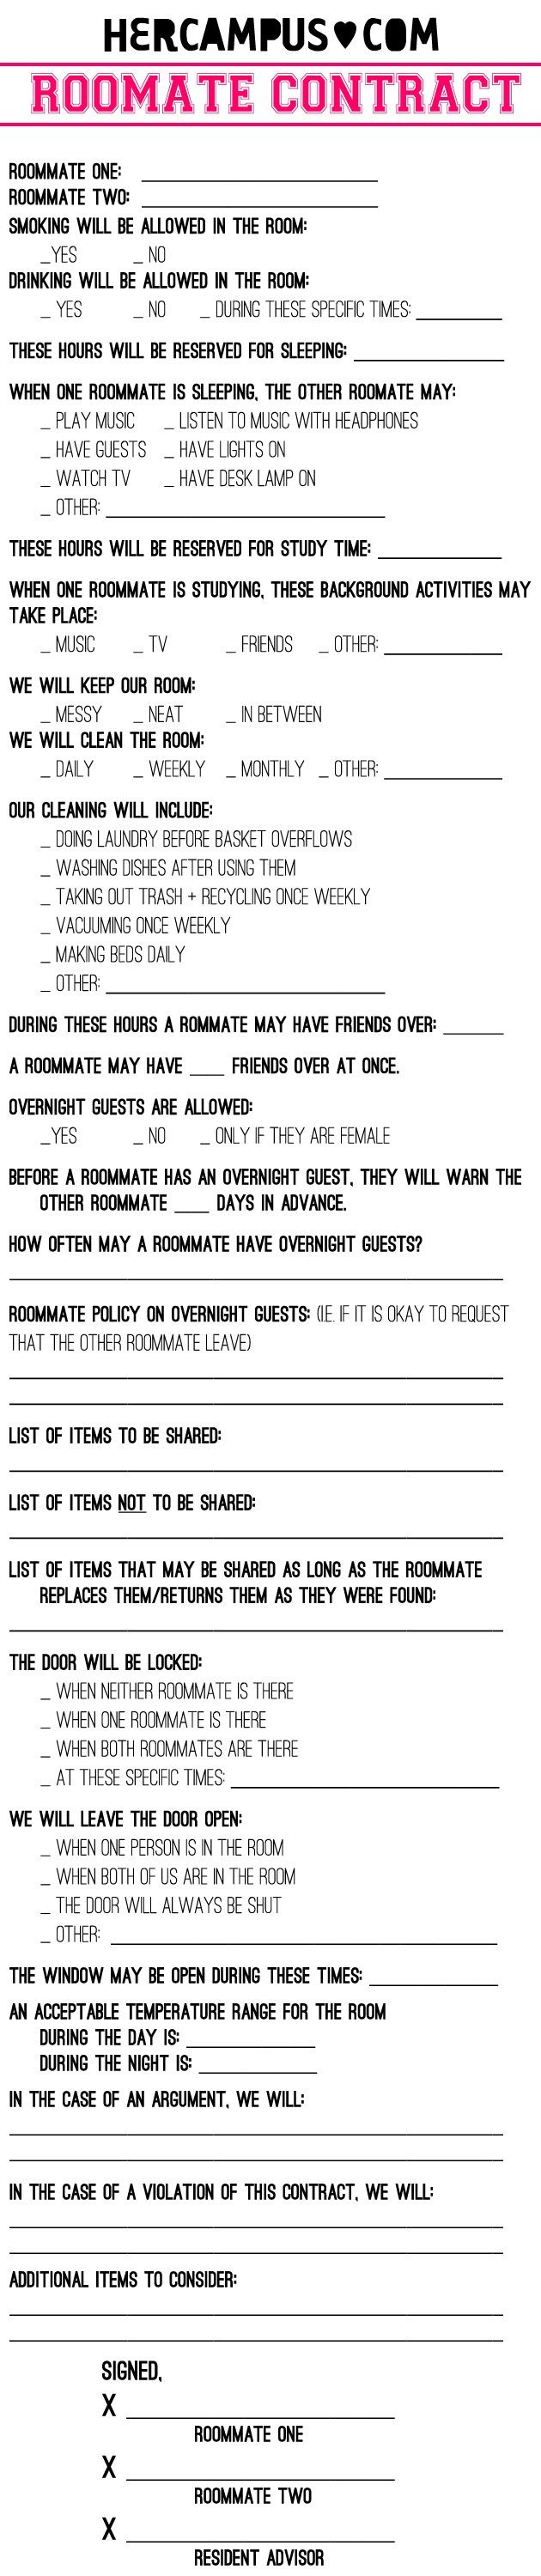 roommate contract Should You Make a Roommate Contract? (Plus A Roommate Contract ...